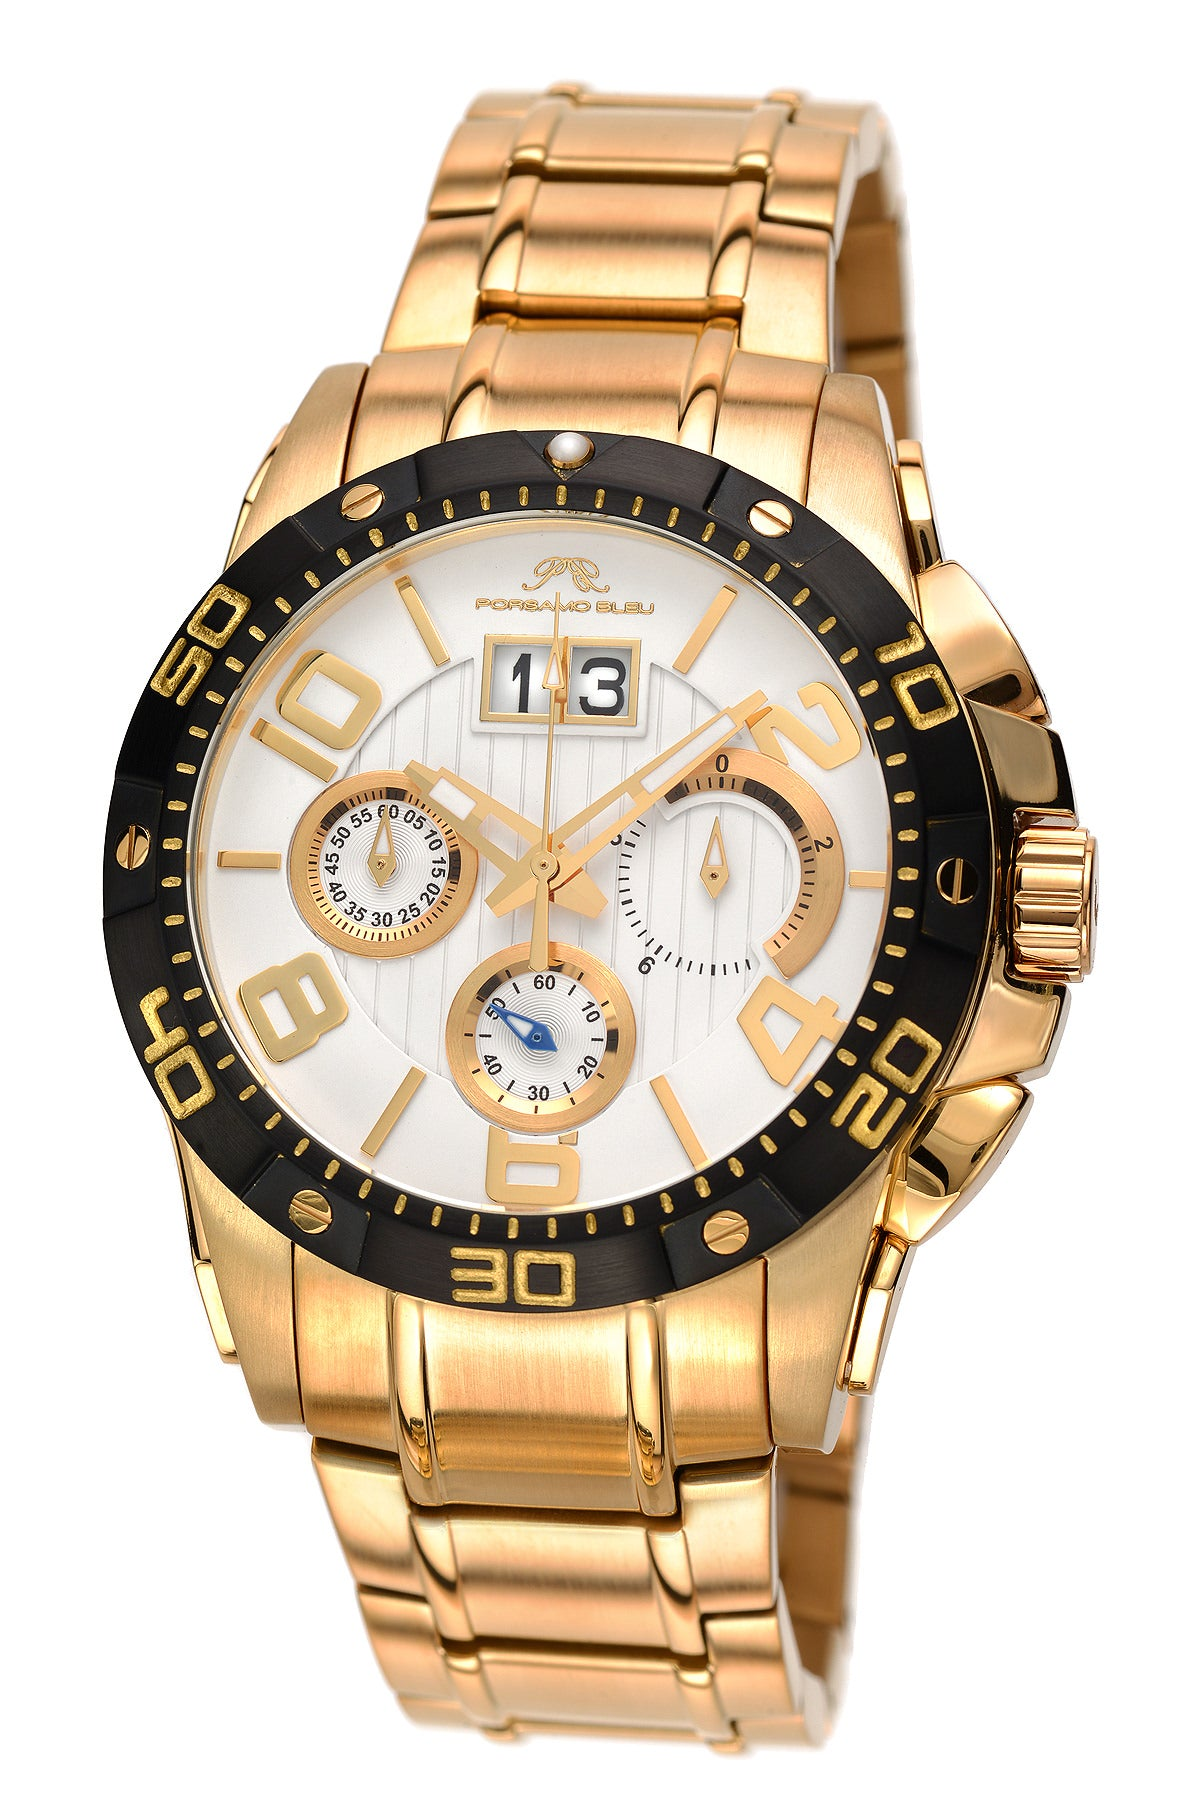 Porsamo Bleu Francoise luxury chronograph men's stainless steel watch, gold, black, white 243BFRS